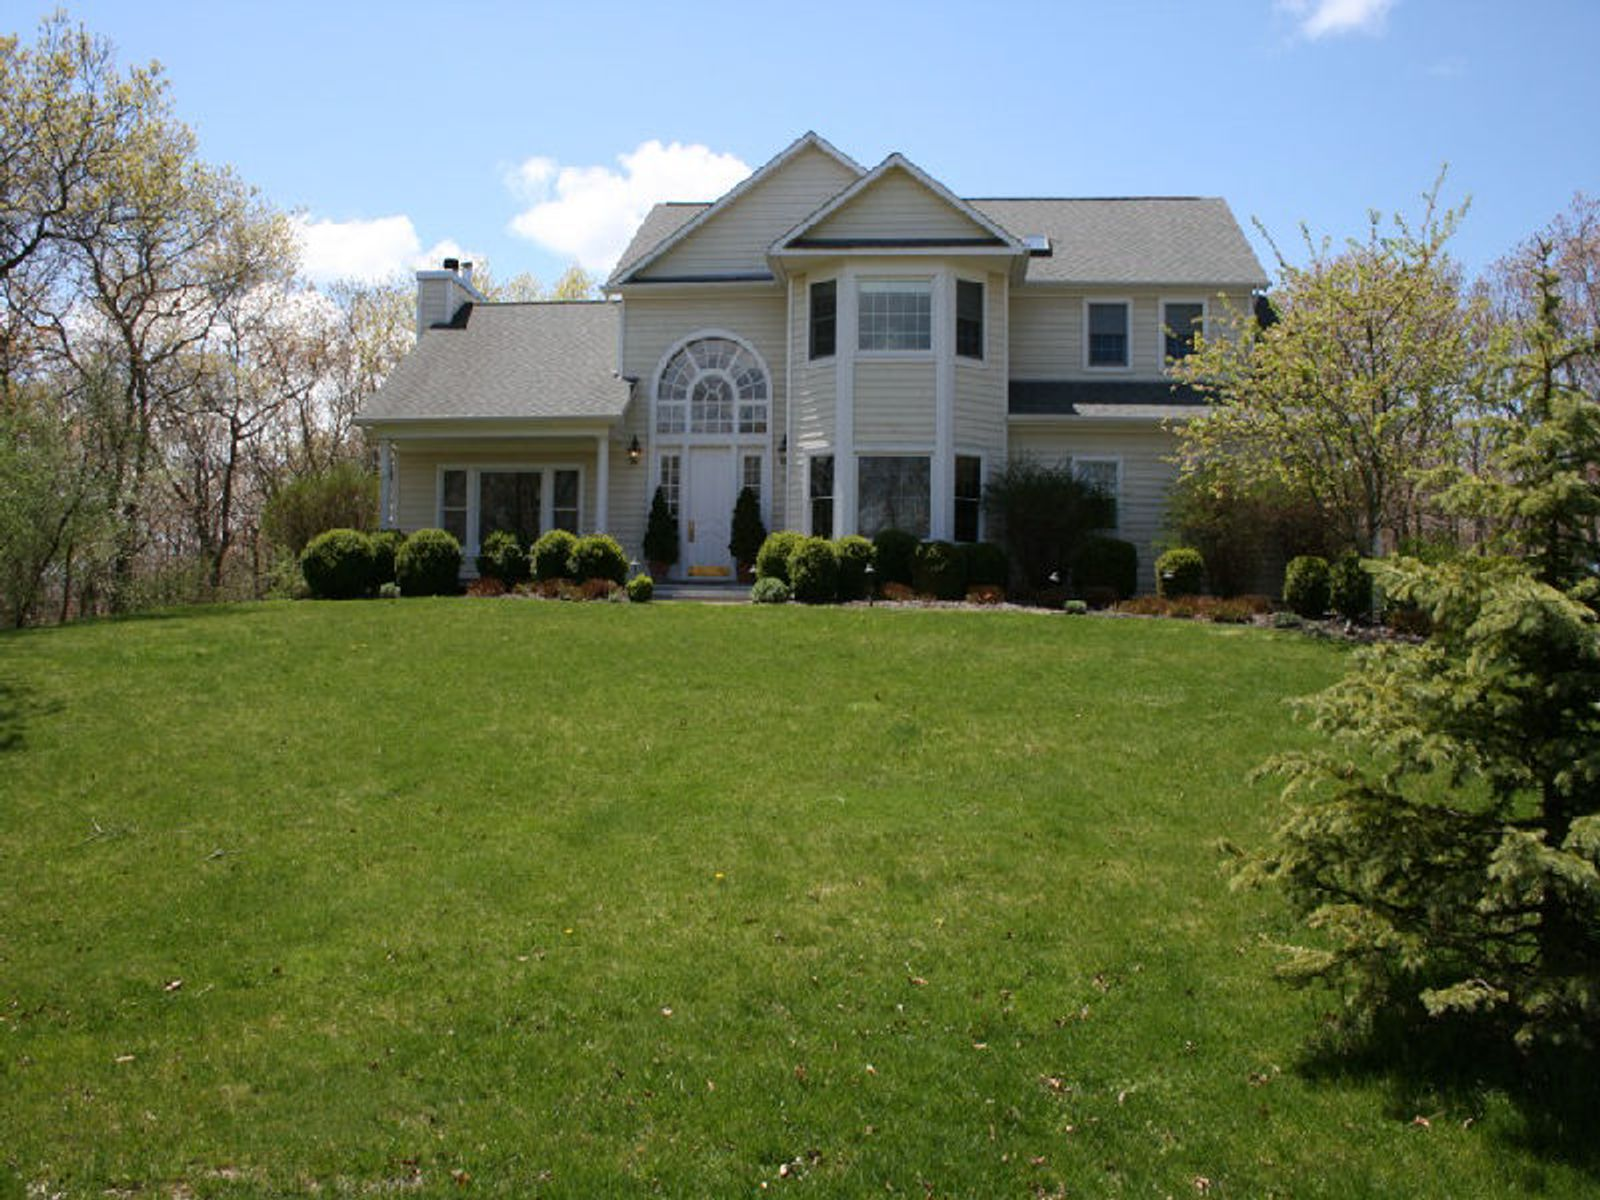 Elegant Retreat Southampton, Southampton NY Single Family Home - Hamptons Real Estate